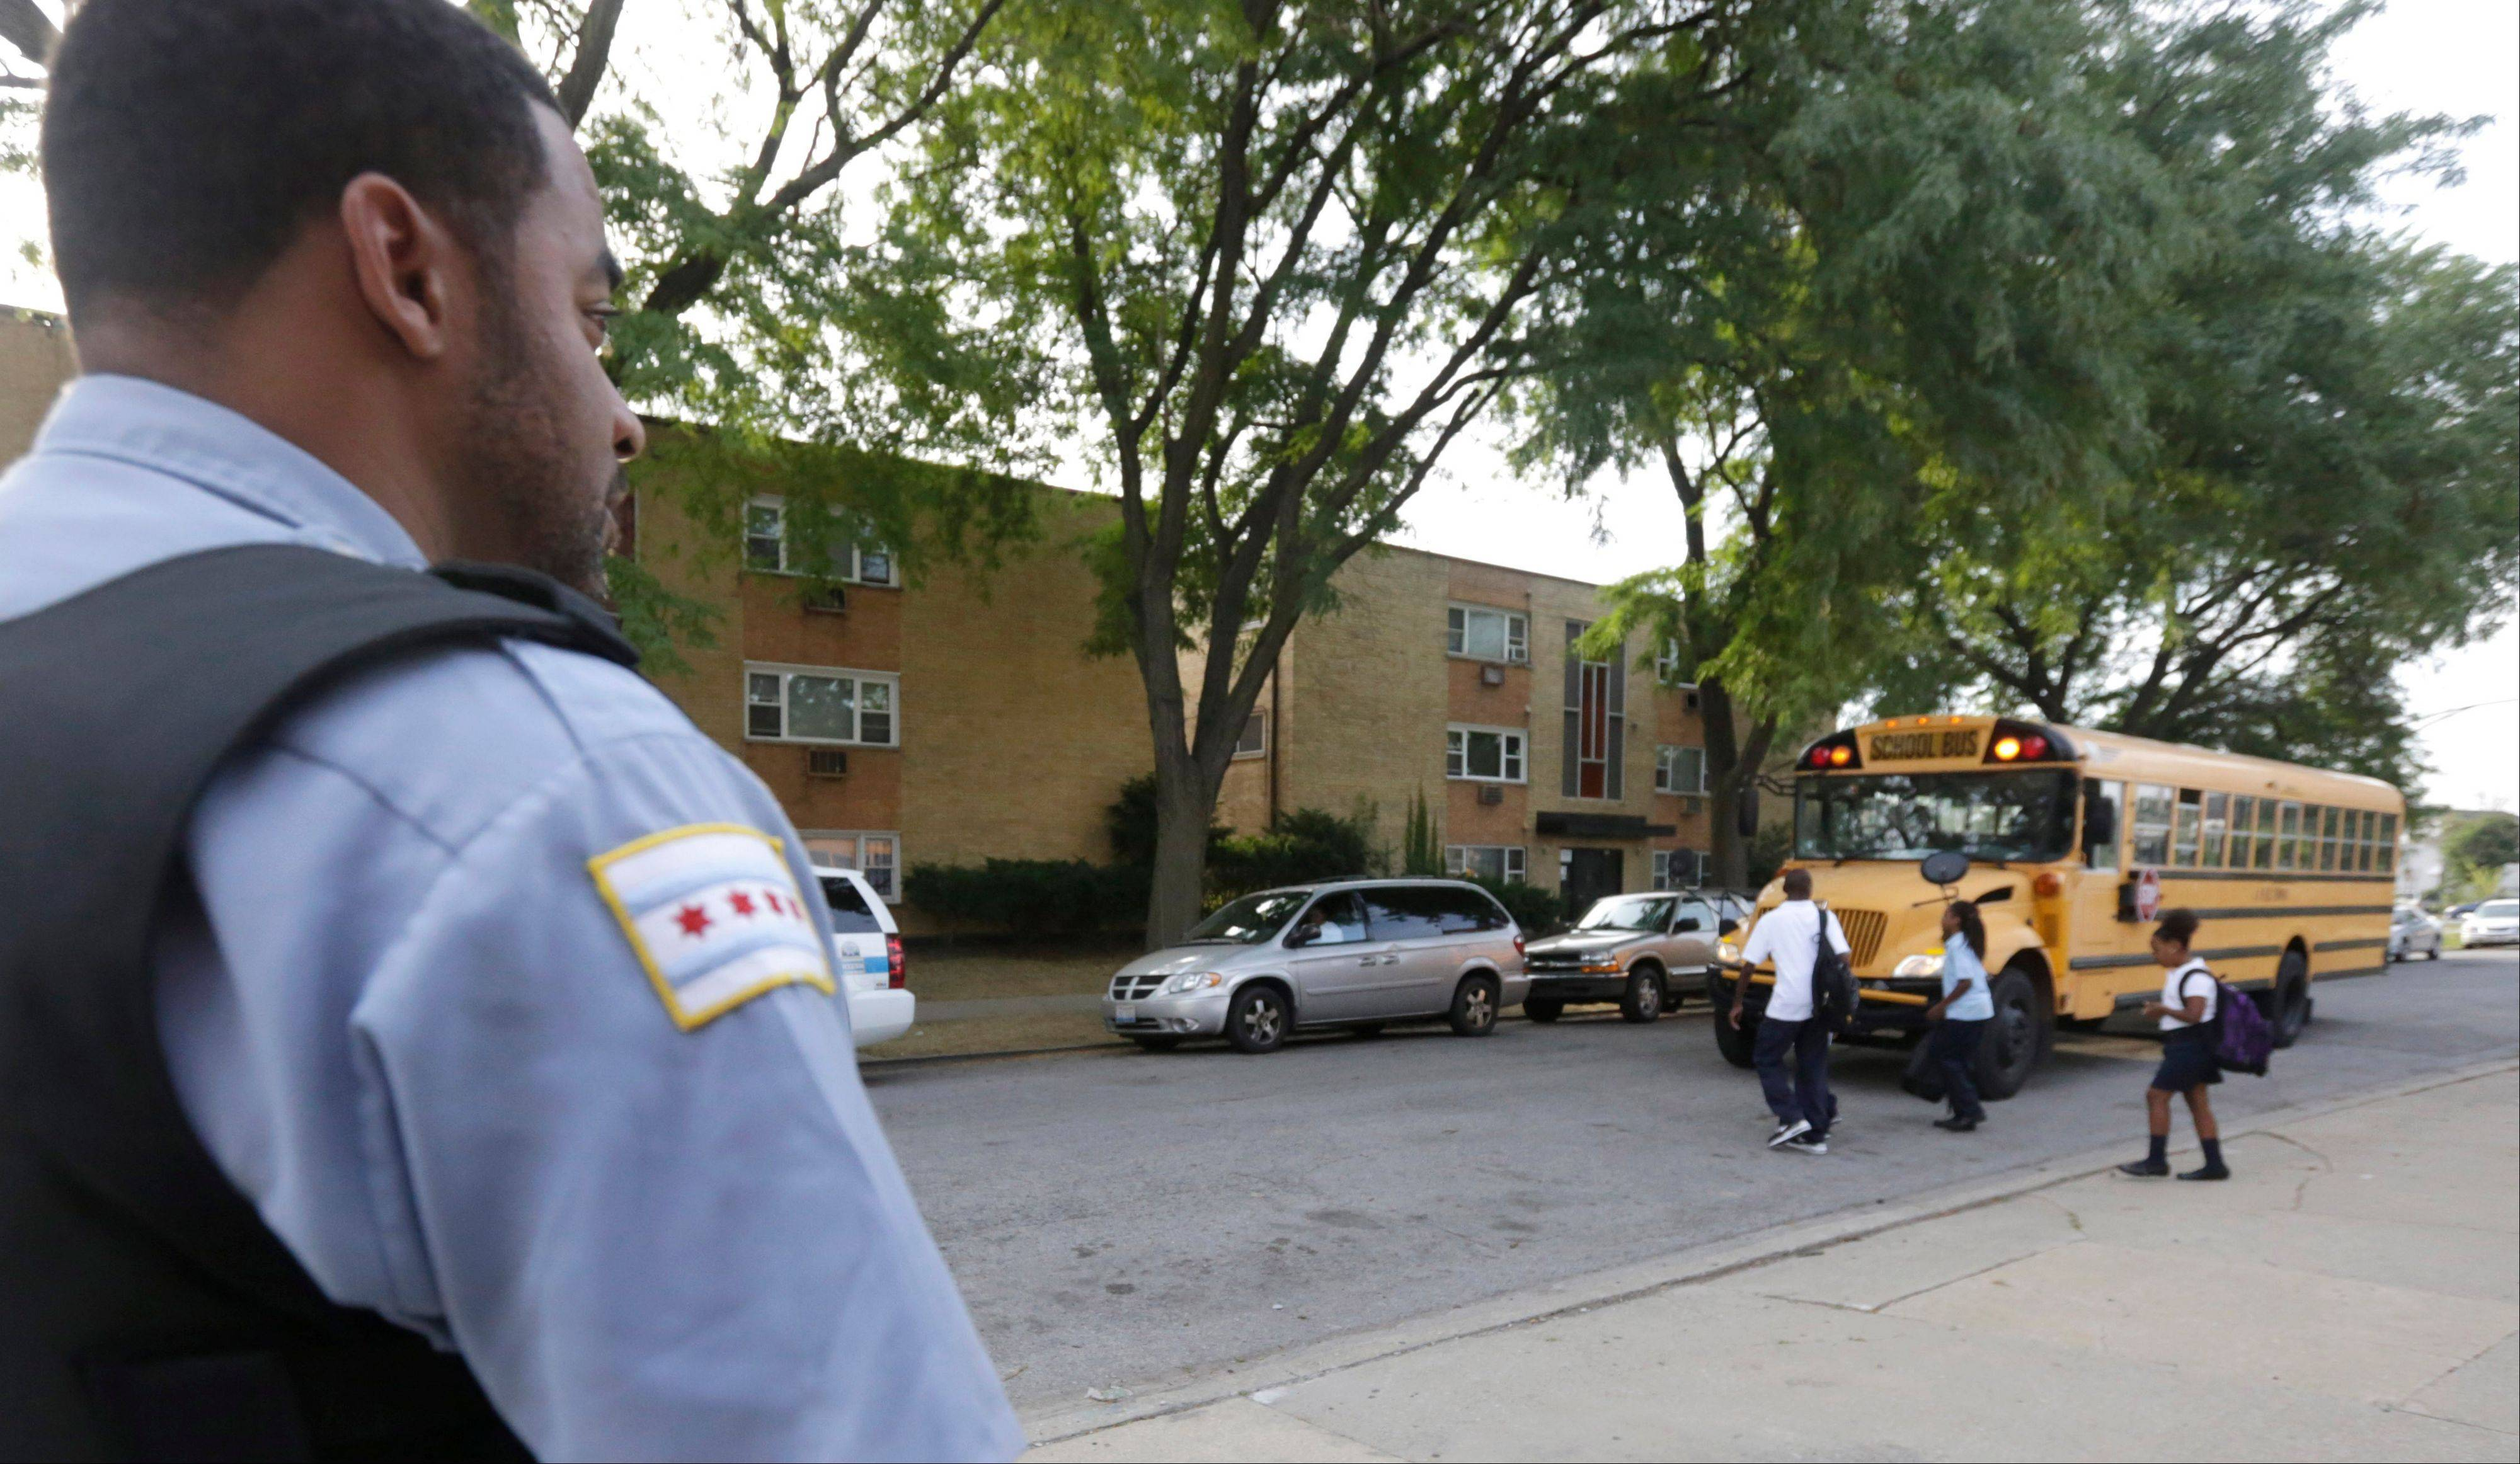 A police officer watches children board a school bus at Gresham Elementary School on the first day of classes in Chicago in late August.